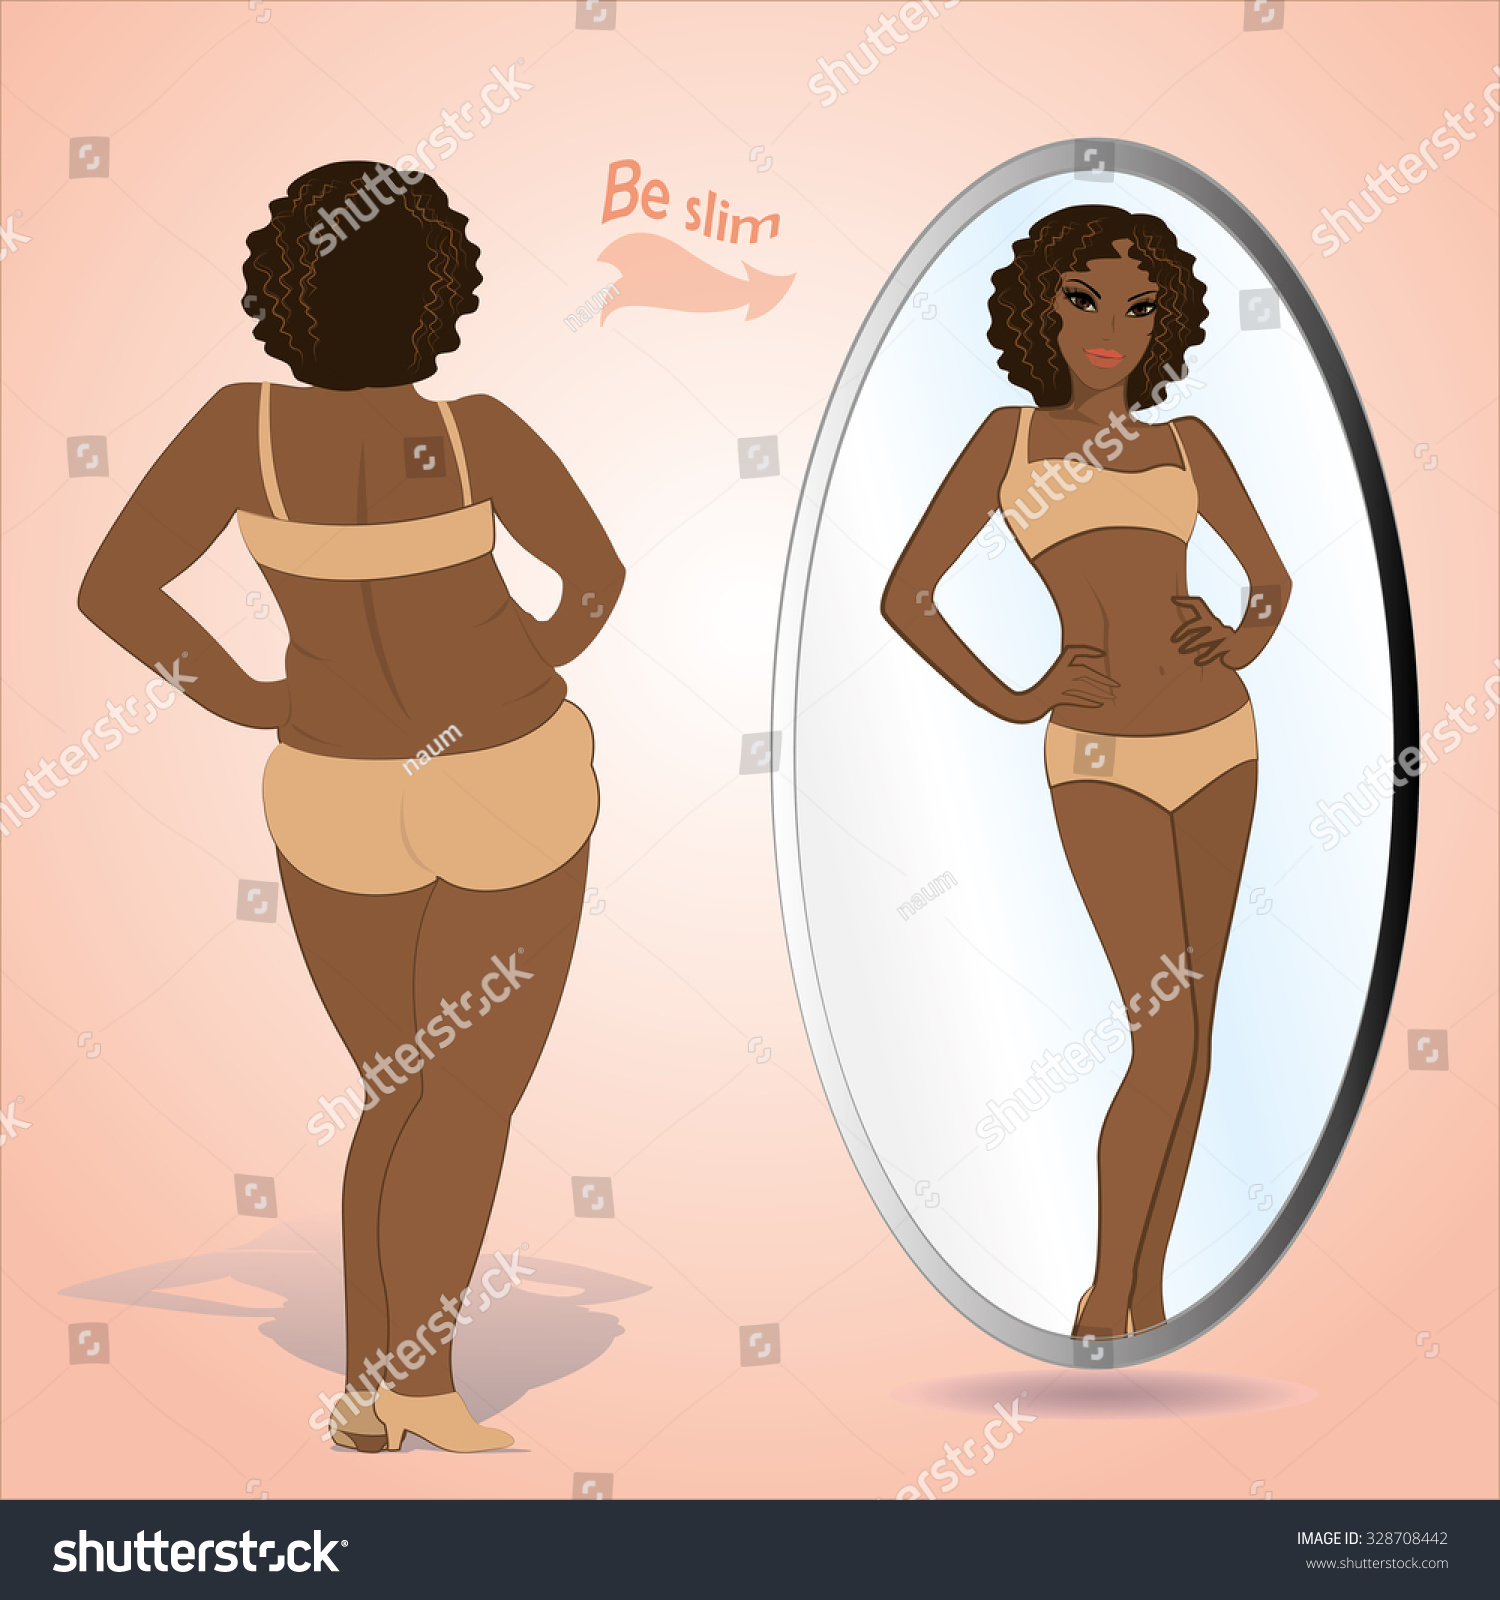 Woman fat pictures black It's on